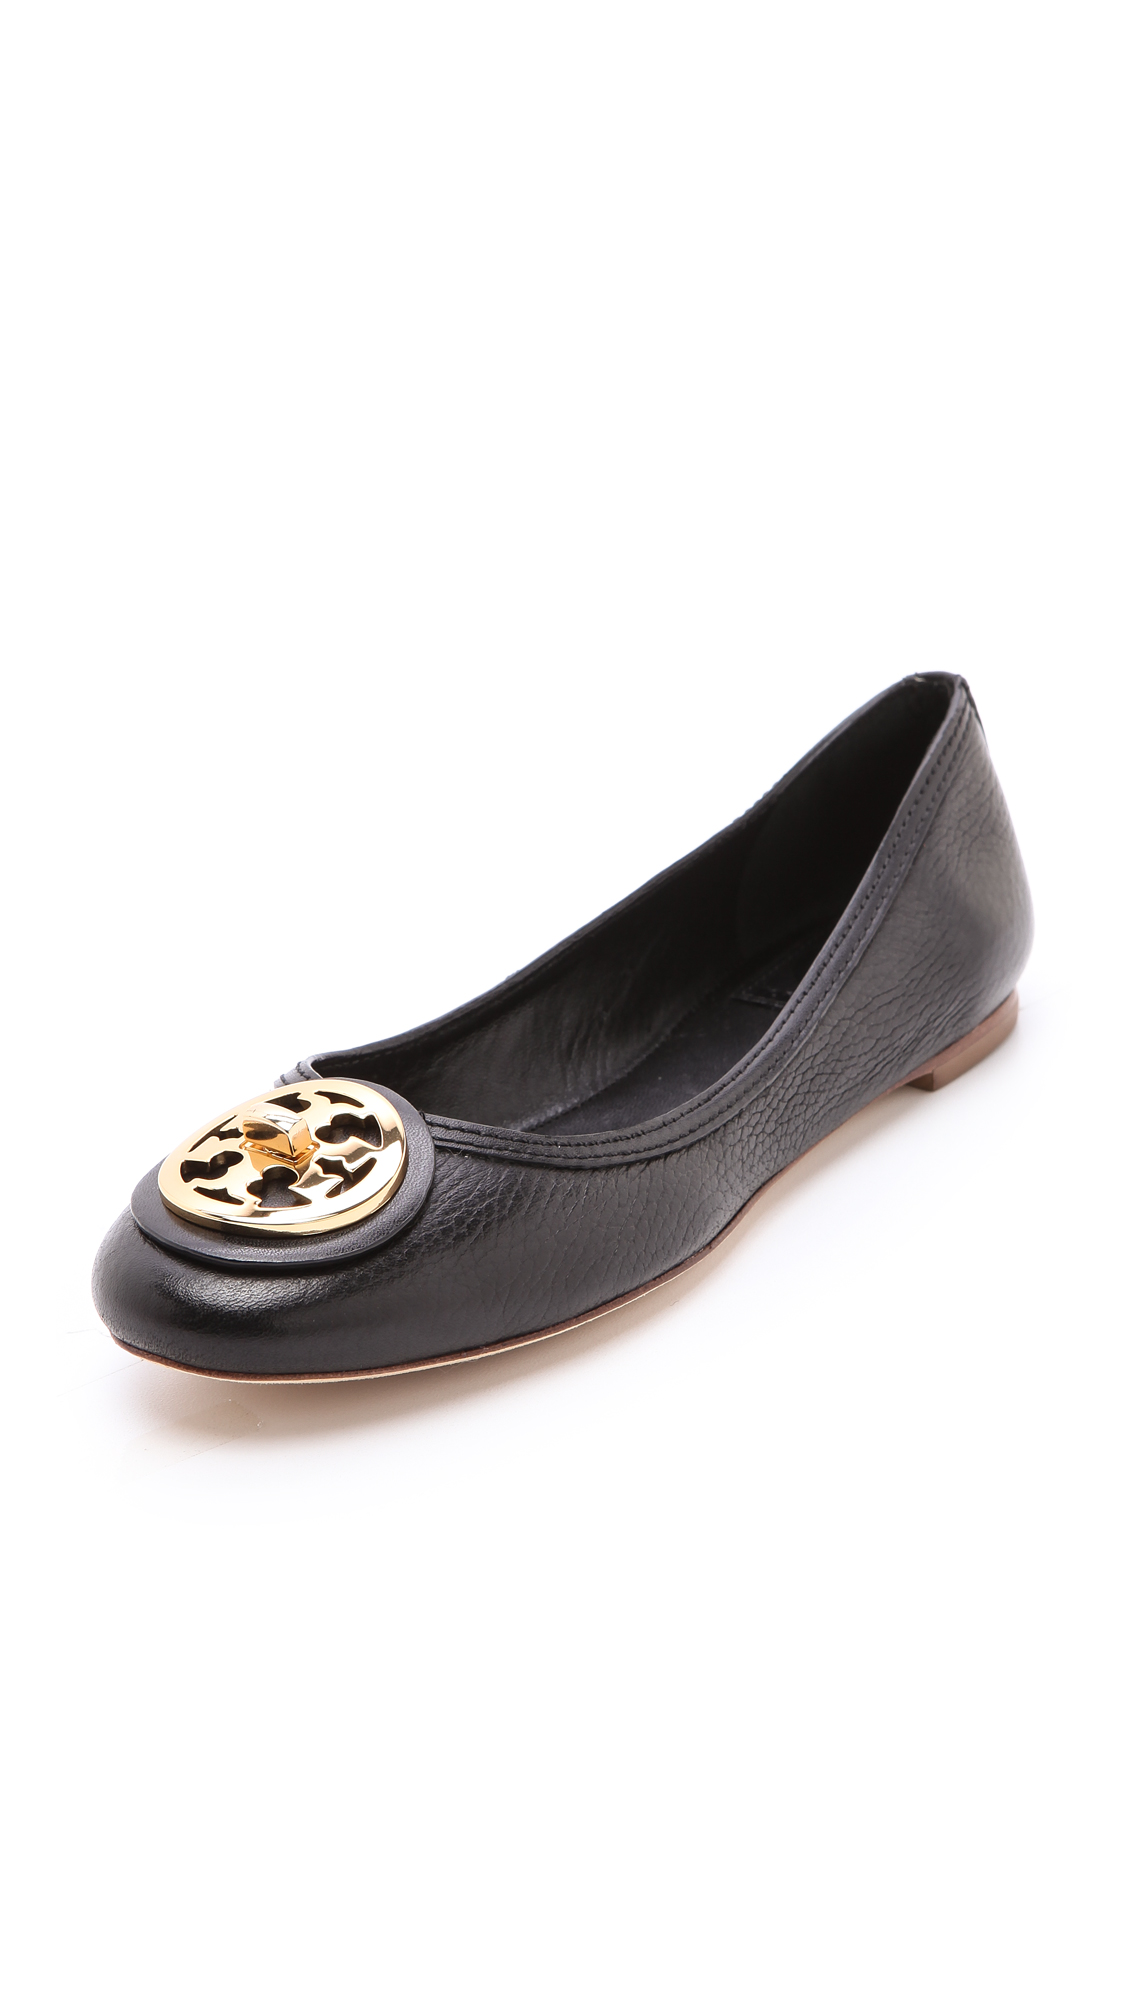 We Supply Cheap Tory Burch Shoes and Tory Burch Sale Online With Many Discount Flats Outlet Online goodfilezbv.cf Discount for all Cheap Tory Burch Shoes Sale Online! % Lowest Price and Best Quality Guarantee!